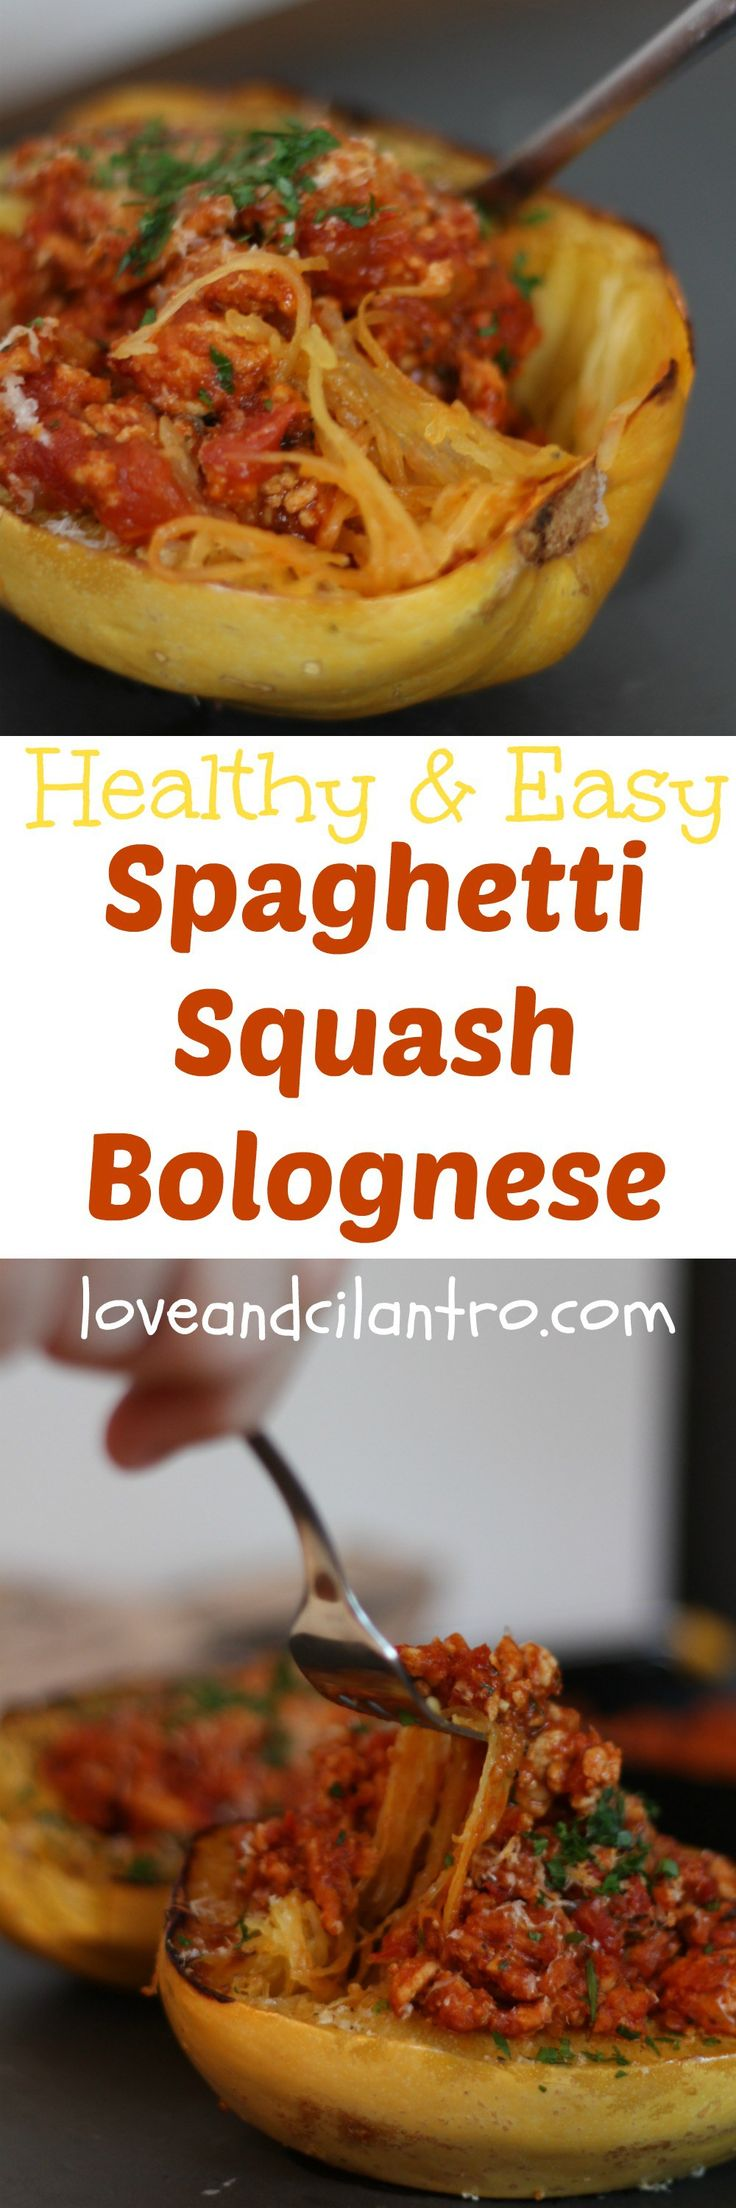 This lightened up version of spaghetti bolognese is healthy, hearty, delicious, and fun to eat (right out the spaghetti squash)!